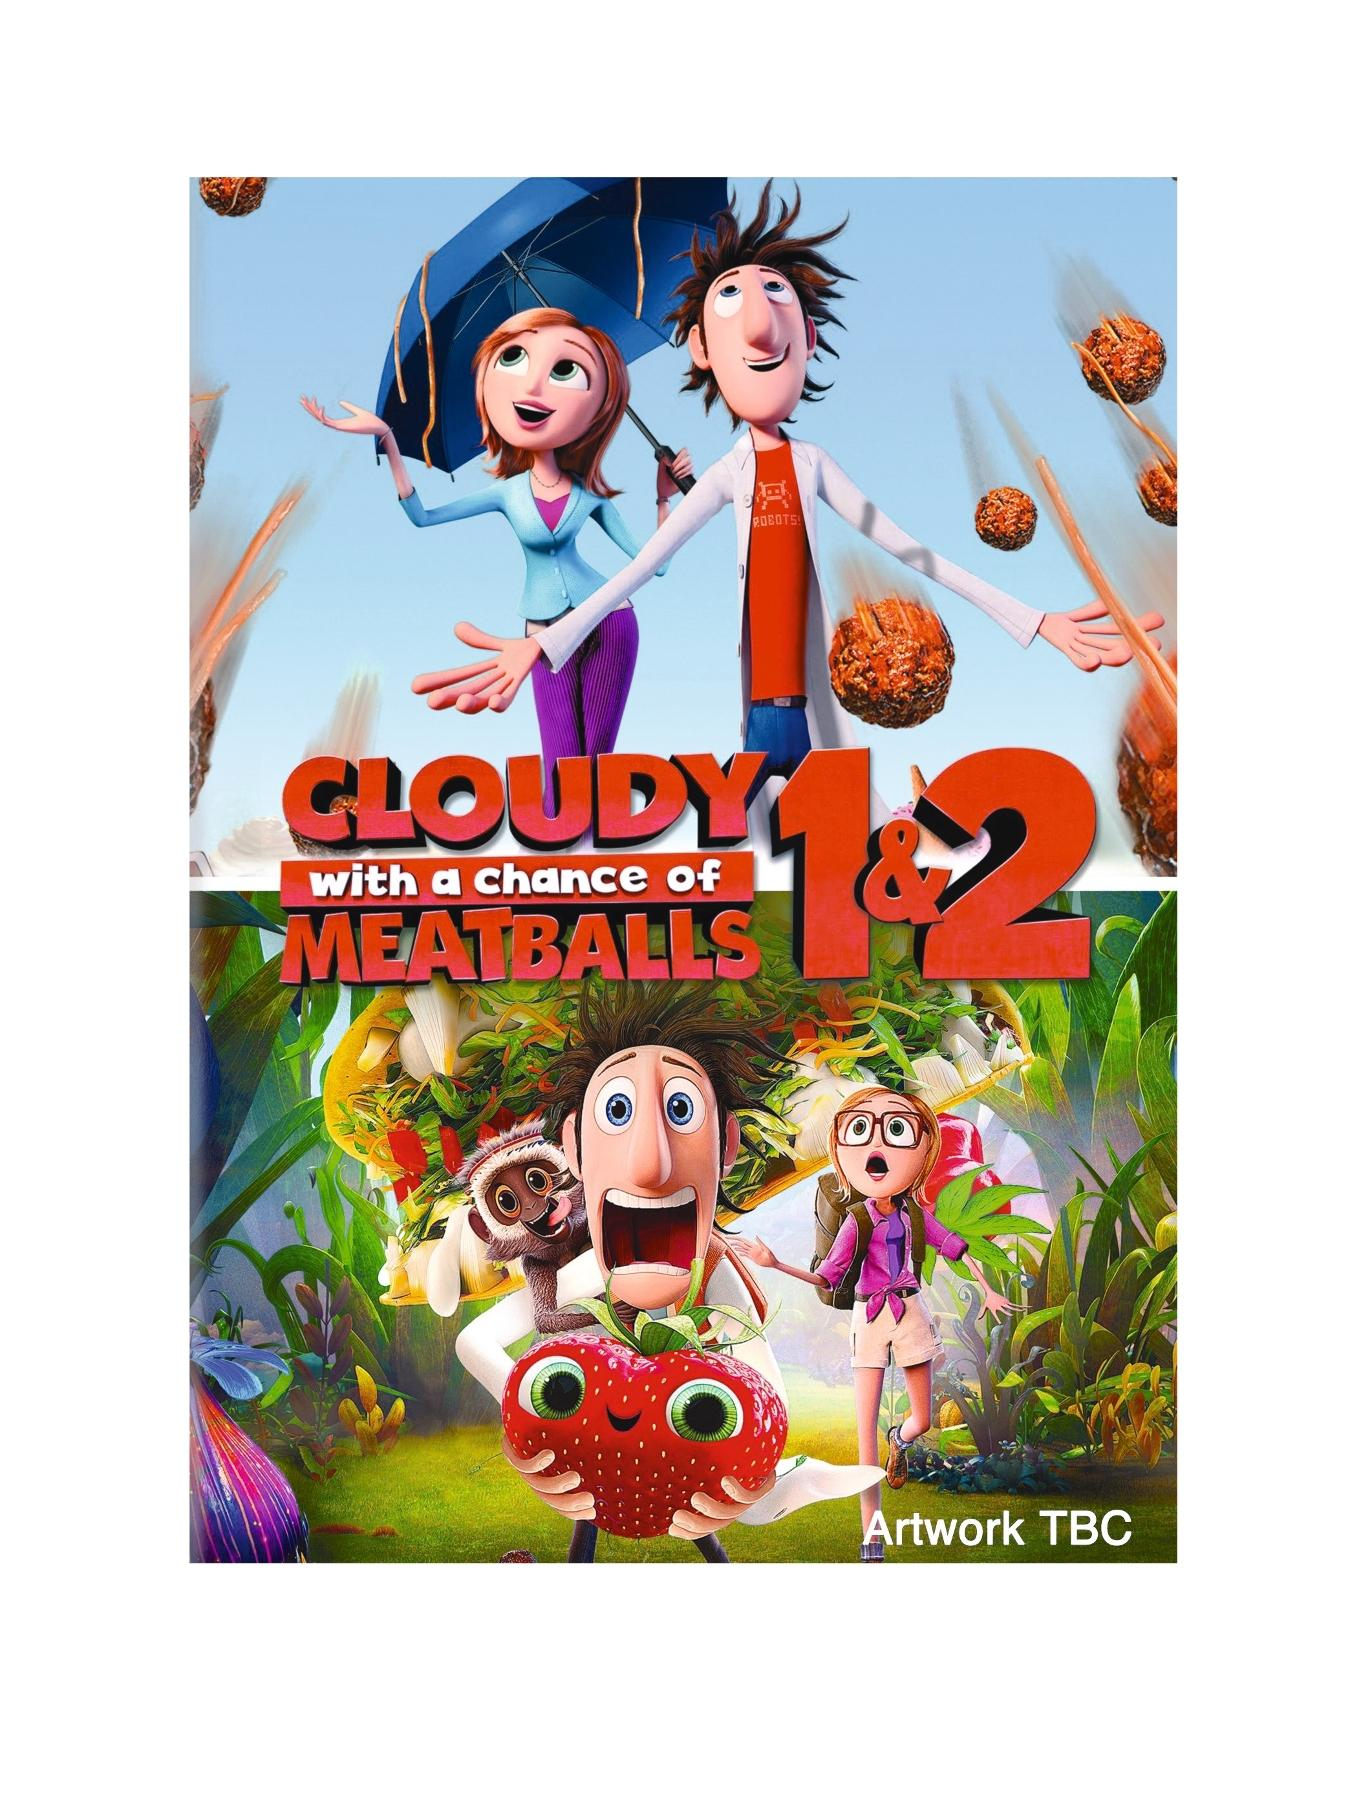 Cloudy With A Chance Of Meatballs 1-2 DVD - Includes FREE scratch and sniff stickers